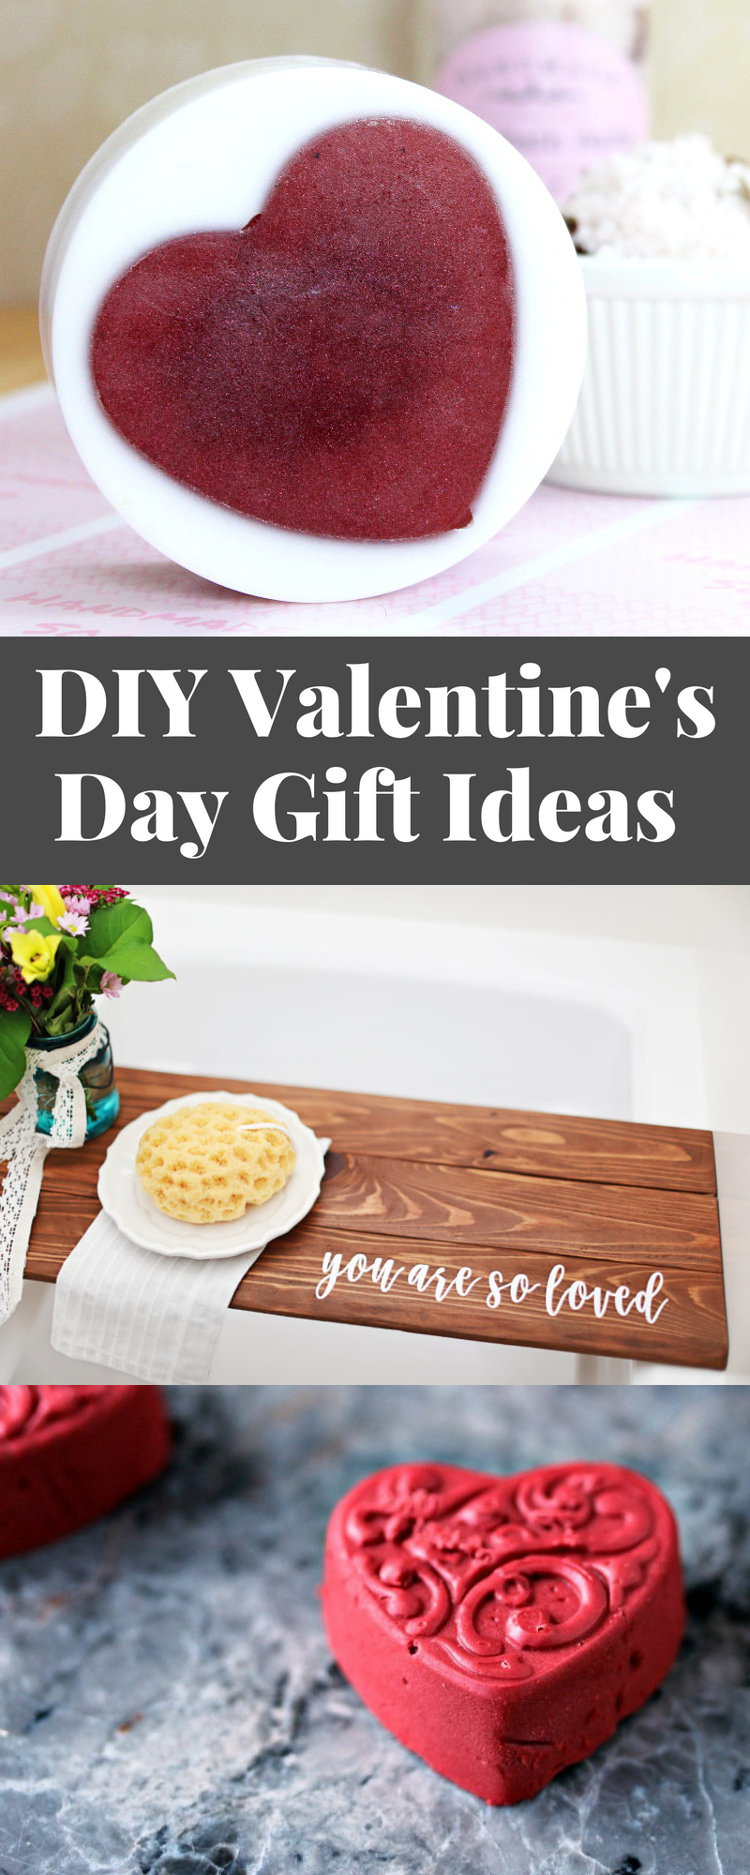 Whether you celebrate Valentine's Day or simply Galentine's Day, this beautiful collection of 18 DIY Valentine's Day gifts is sure to delight!